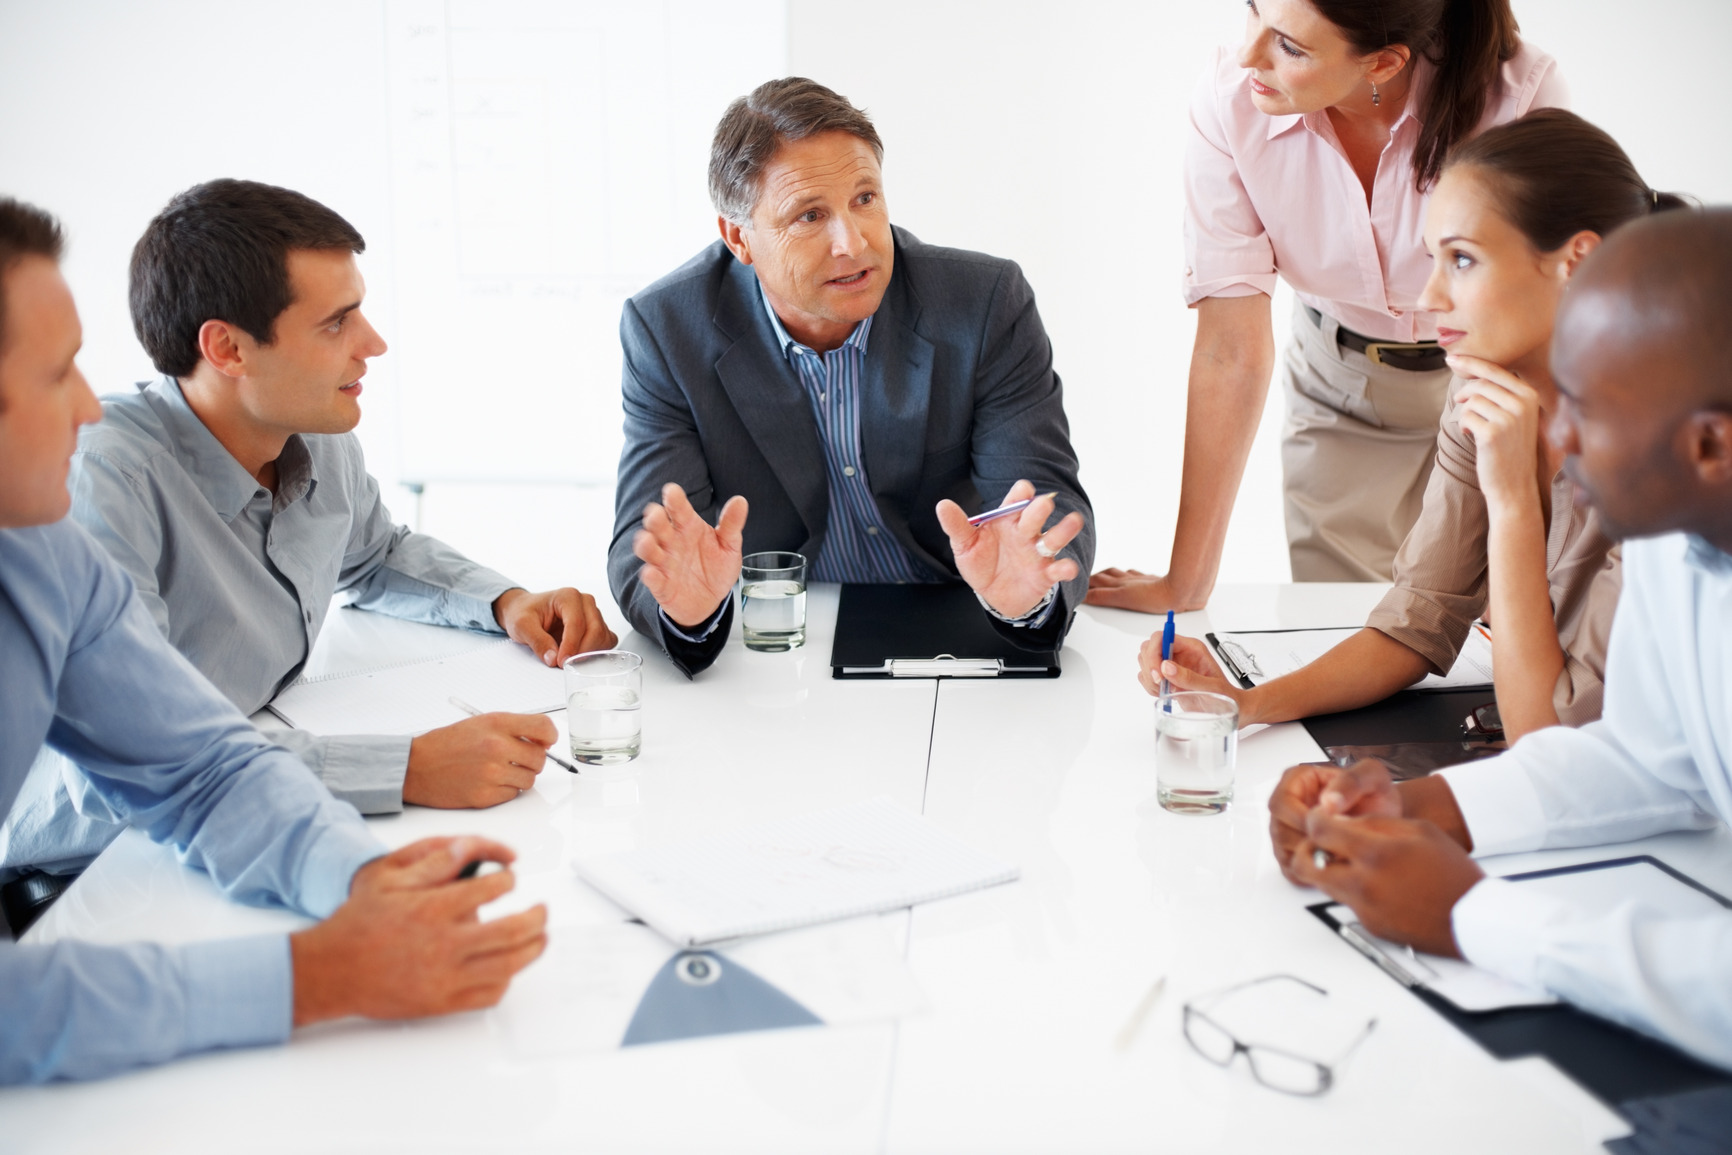 Business team listening to mature business man during meeting